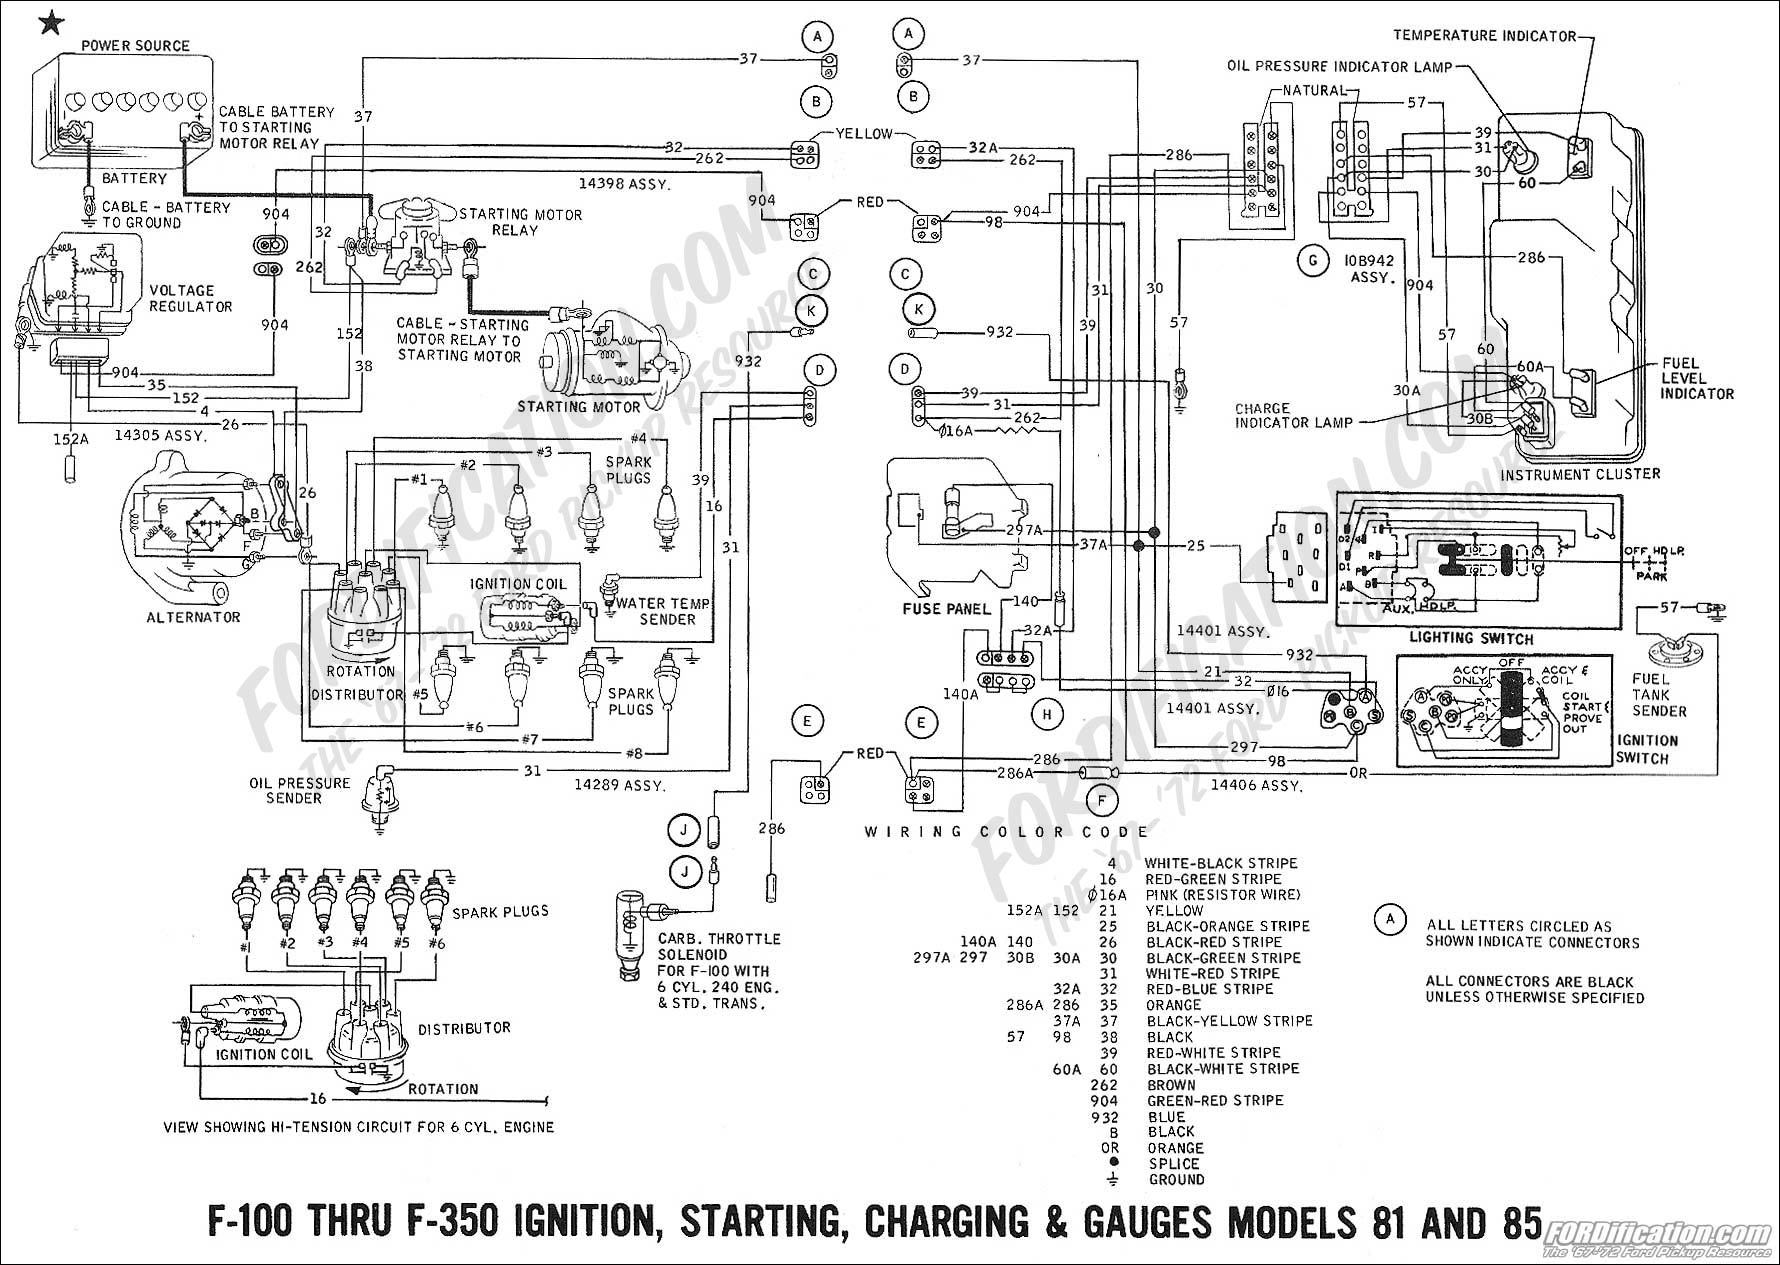 1969 Ford F 350 Wiring Schematic | Wiring Schematic Diagram  Ford F Wiring Schematic on ford f-350 pickup, ford excursion wiring schematic, 2001 ford wiring schematic, ford ranger wiring schematic, ford f800 wiring schematic, ford e-450 wiring schematic, ford e-350 van wiring schematic, ford escape wiring schematic, ford f150 wiring schematic, ford super duty wiring schematic, ford expedition wiring schematic, ford f550 wiring schematic, ford flex wiring schematic, ford f53 wiring schematic, ford radio wiring schematic, ford f-350 lifted trucks, ford f250 wiring schematic, ford f-series dually diesel, ford f-350 regular cab, ford 7 pin plug schematic,